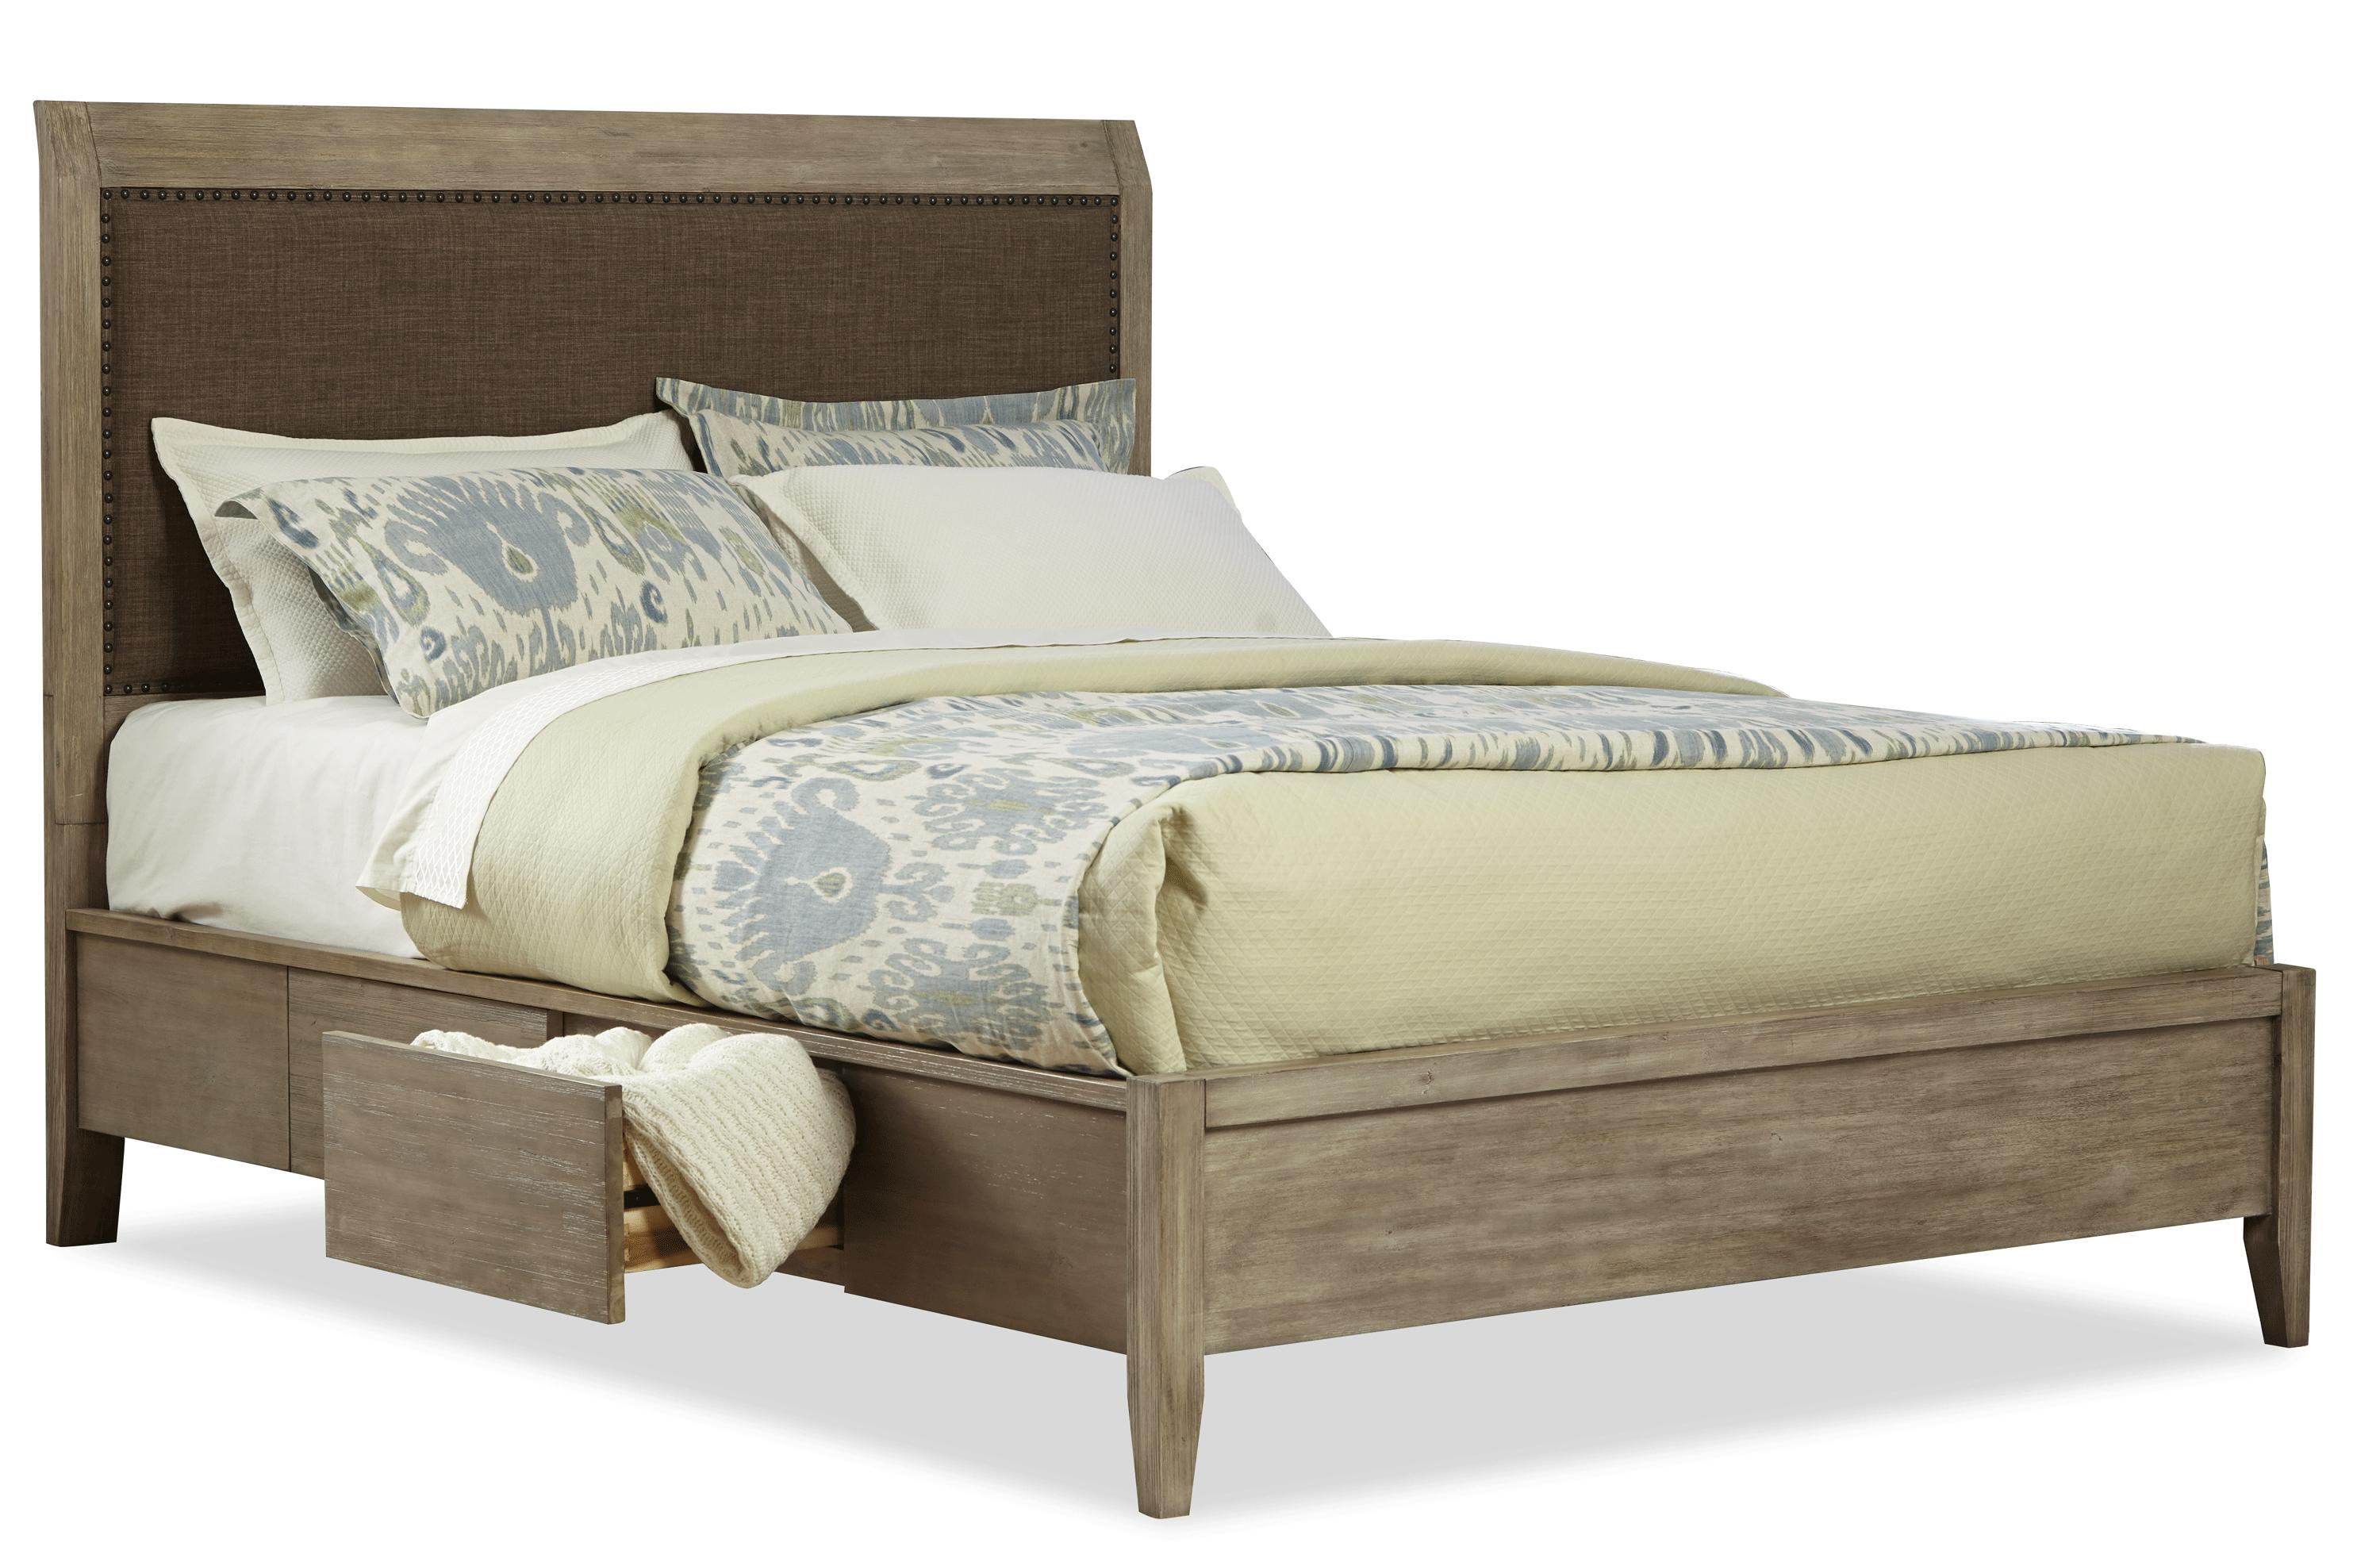 Cresent Fine Furniture Corliss Landing King Upholstered Double Sided Storage Bed - Item Number: 5633KB+2x32KRS+32KSL